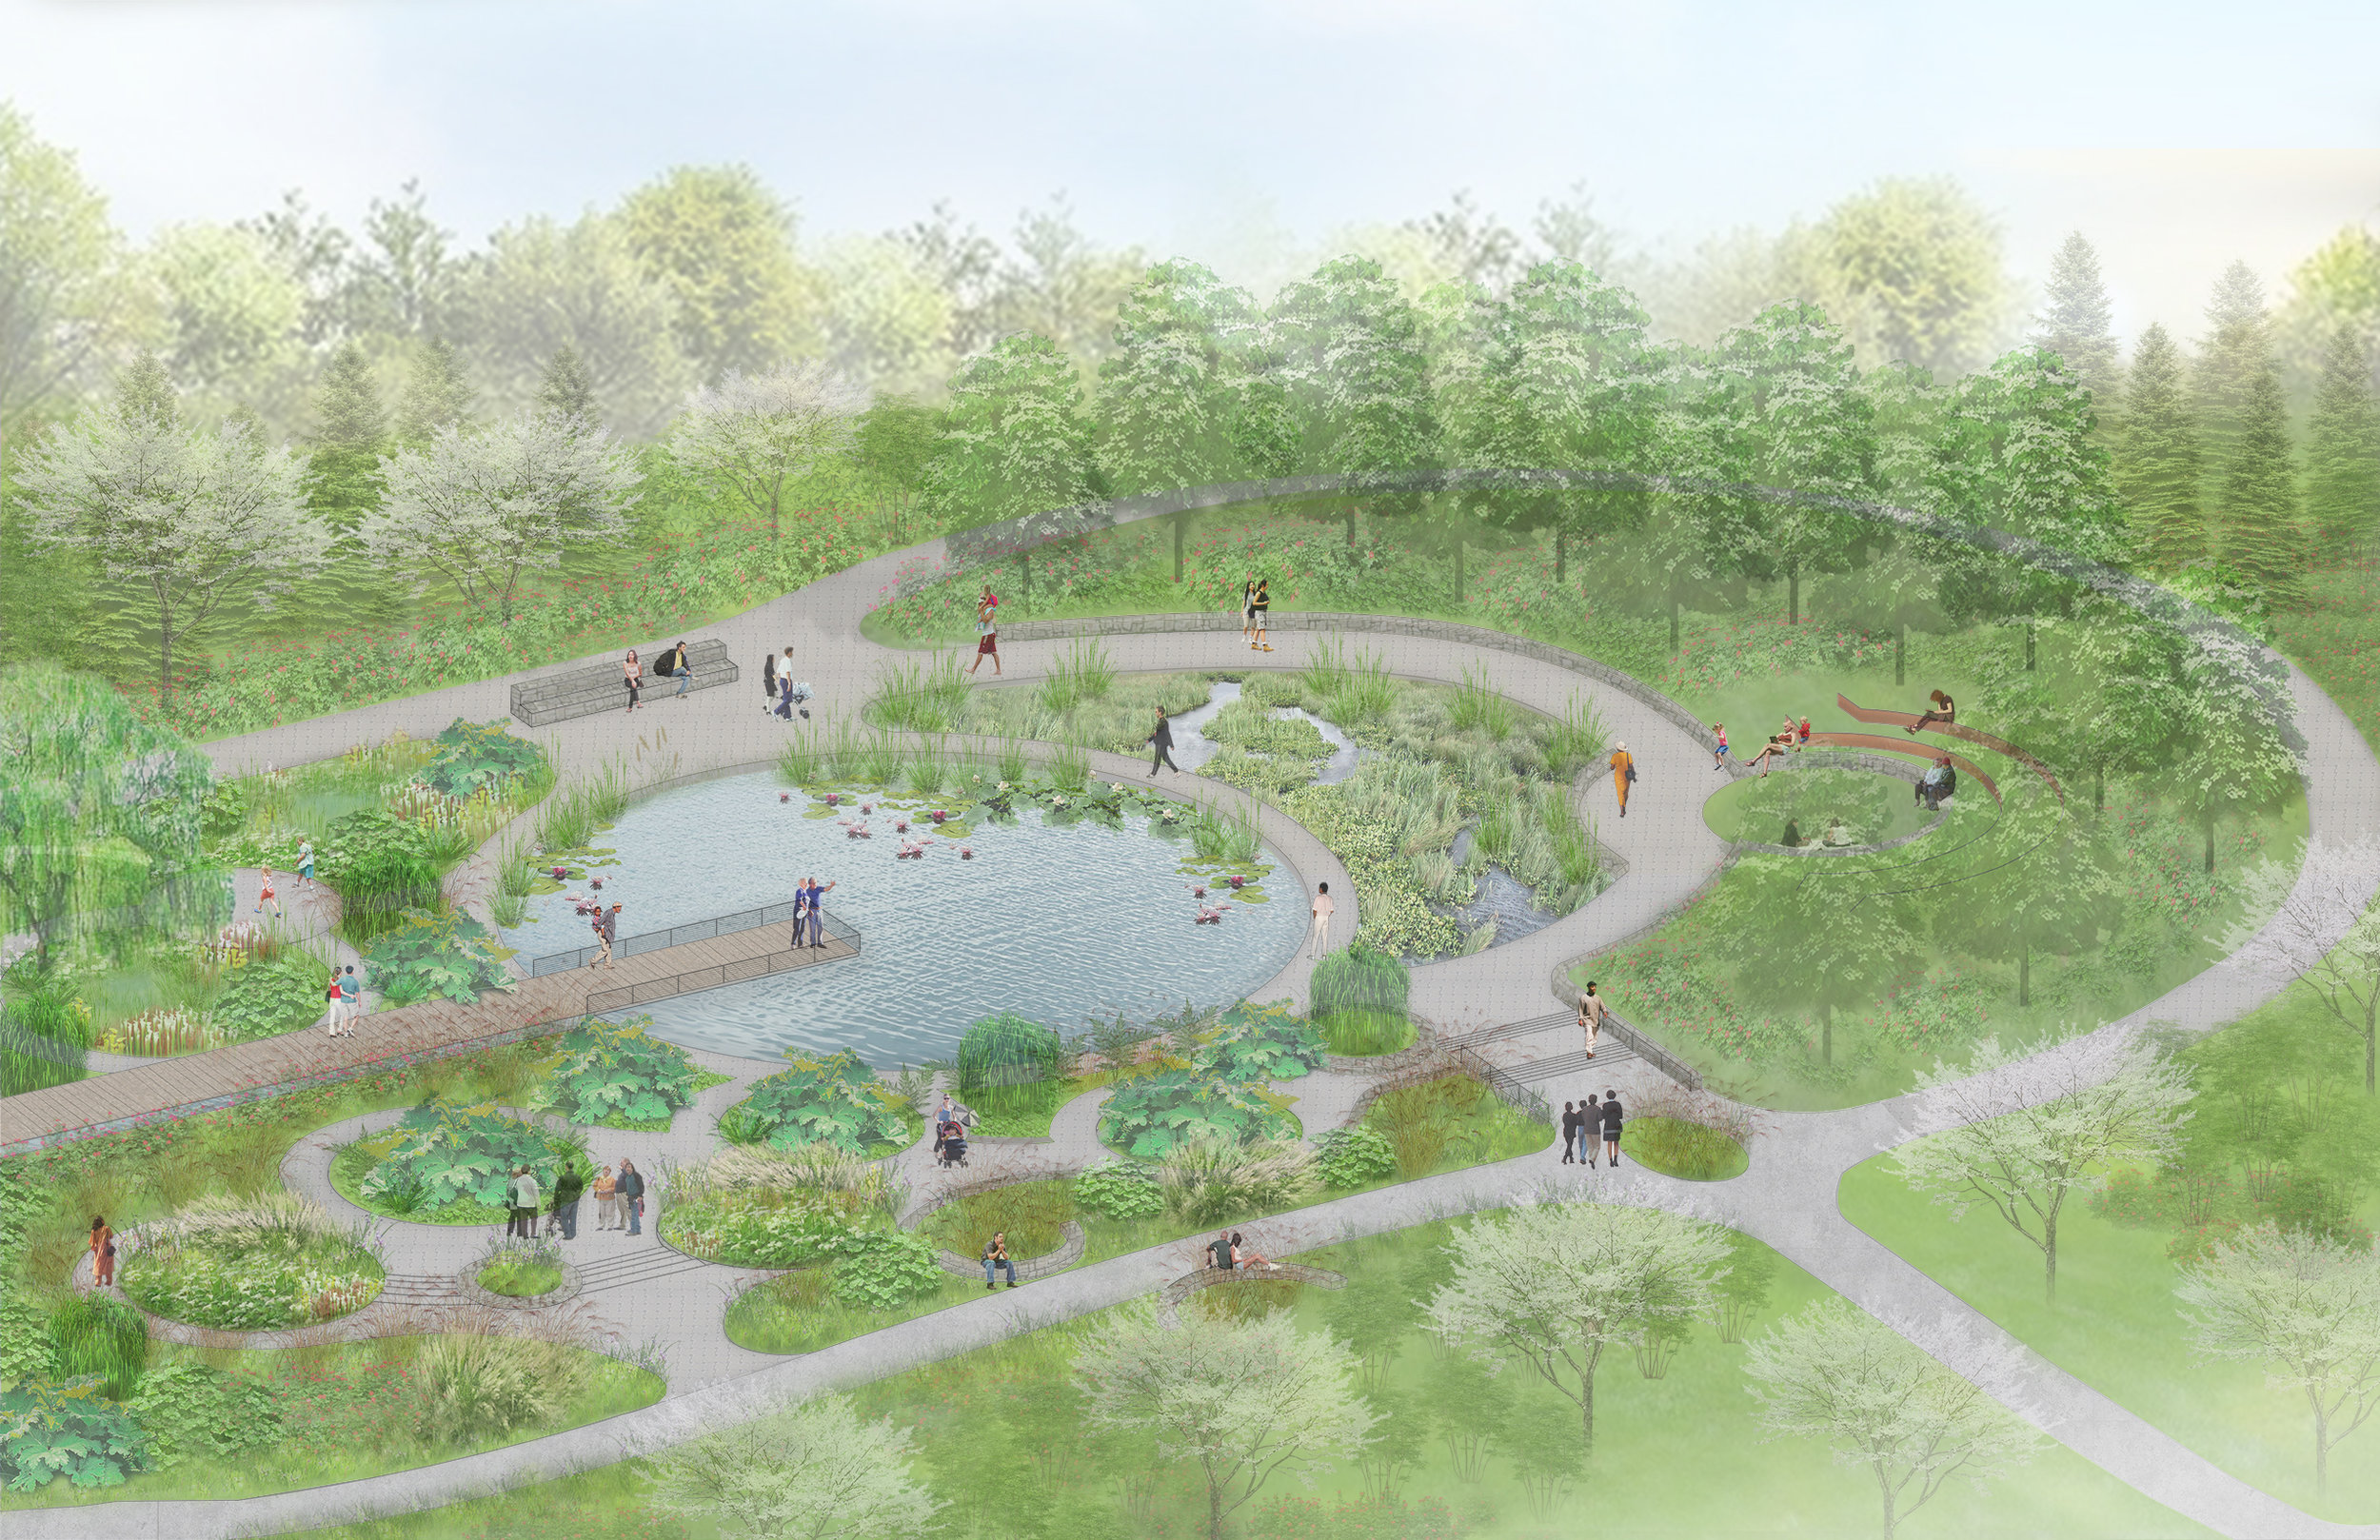 Gulliver's Garden - This garden is intended to make visitors feel like they are in an enchanted land that will captivate both children and adults alike.